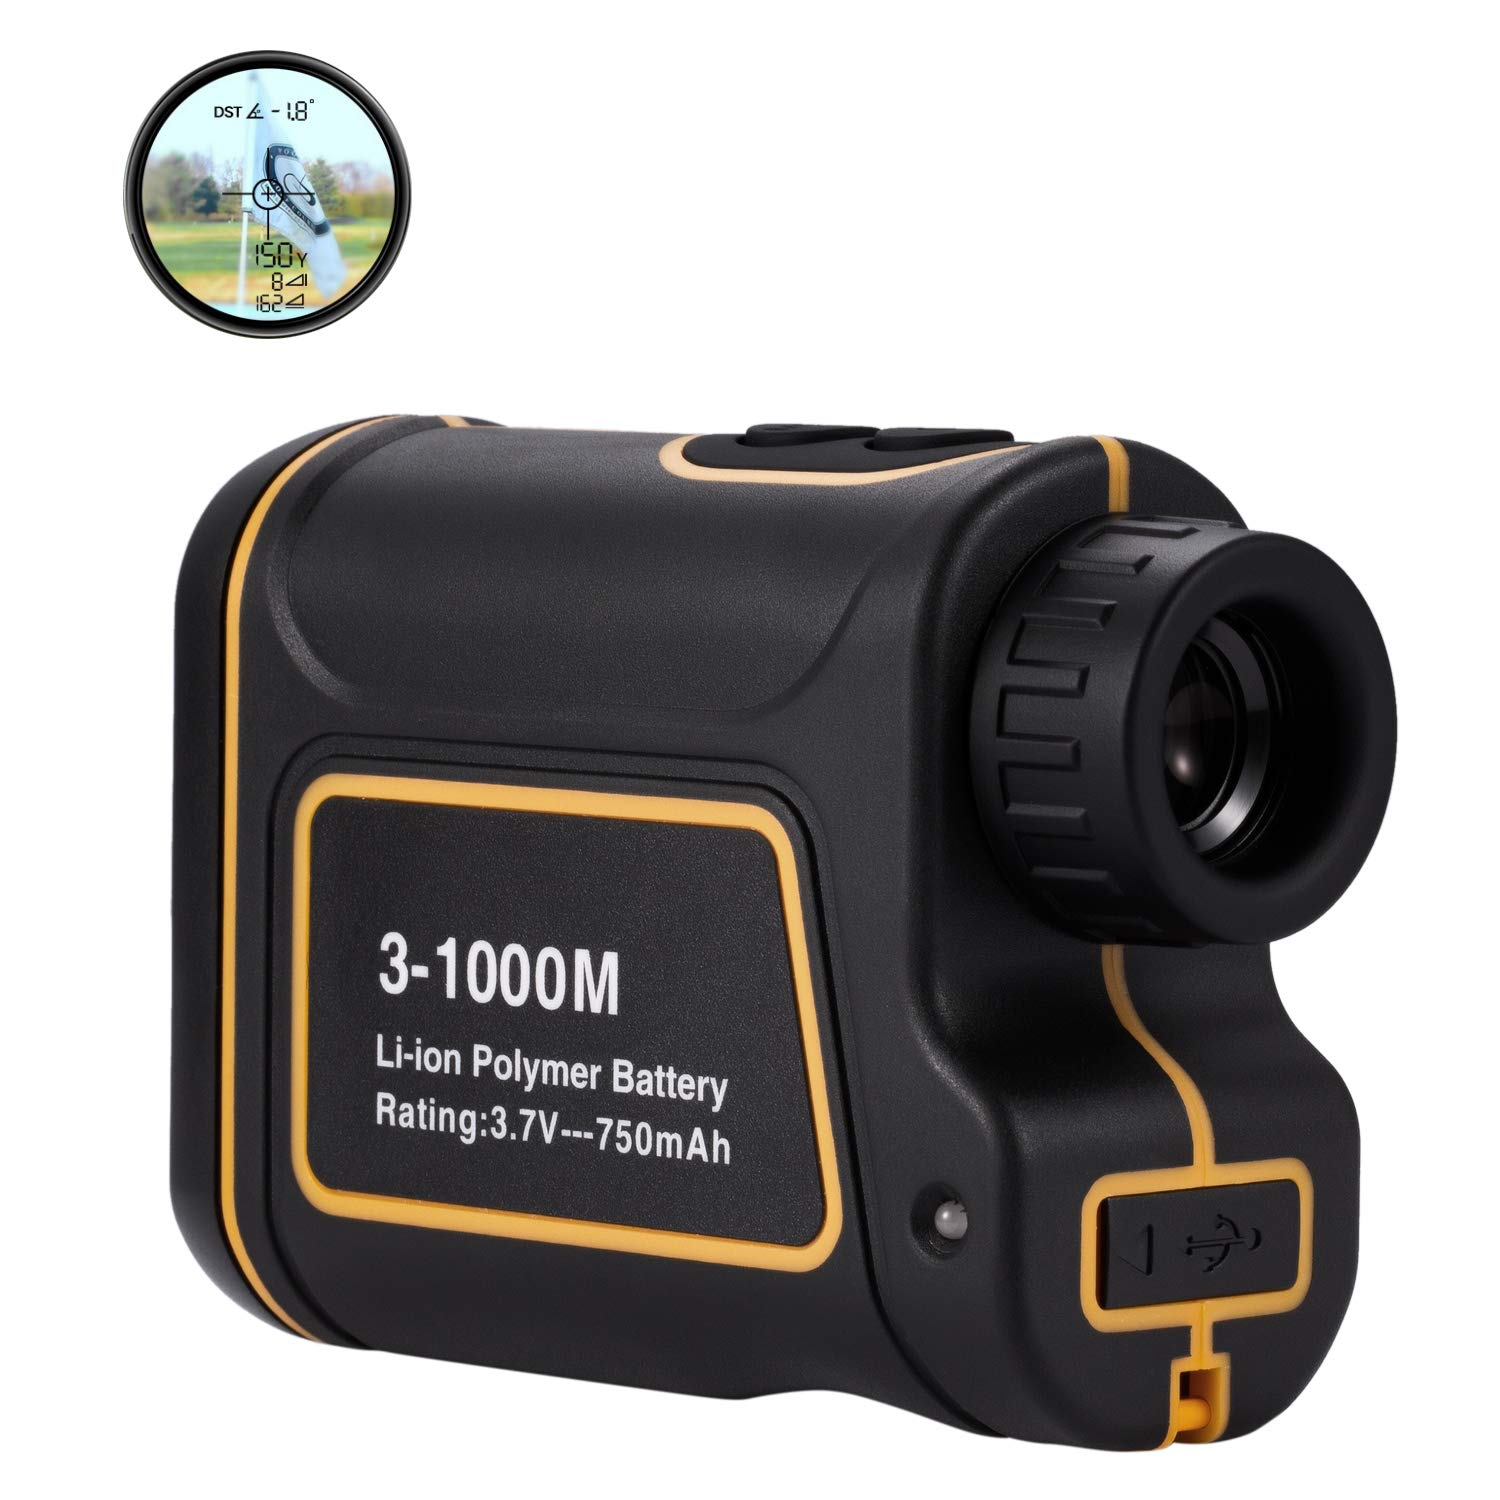 AbdTech Compact Golf Range Finder, USB Charging Rangefinder with 6X Magnification 1096 Yard, Support Flag Pole Lock Horizontal Vertical Angle Speed Scan Measurement Fits Hunting Golf Course Hiking by AbdTech